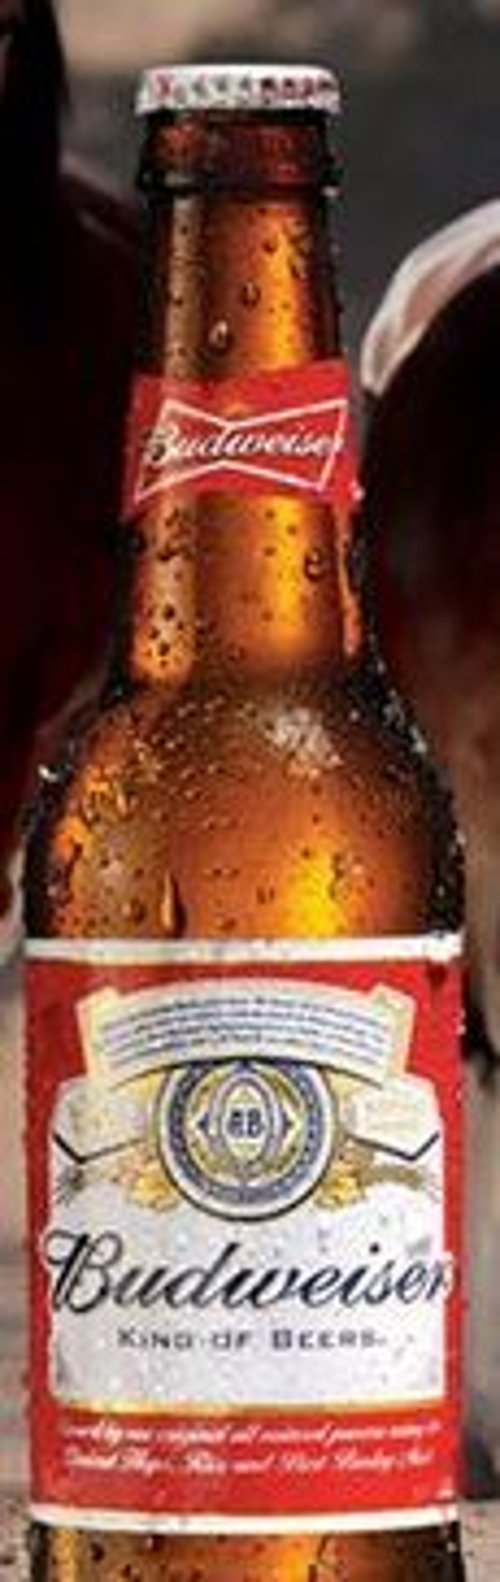 King of Beers by Budweiser in Begin Again